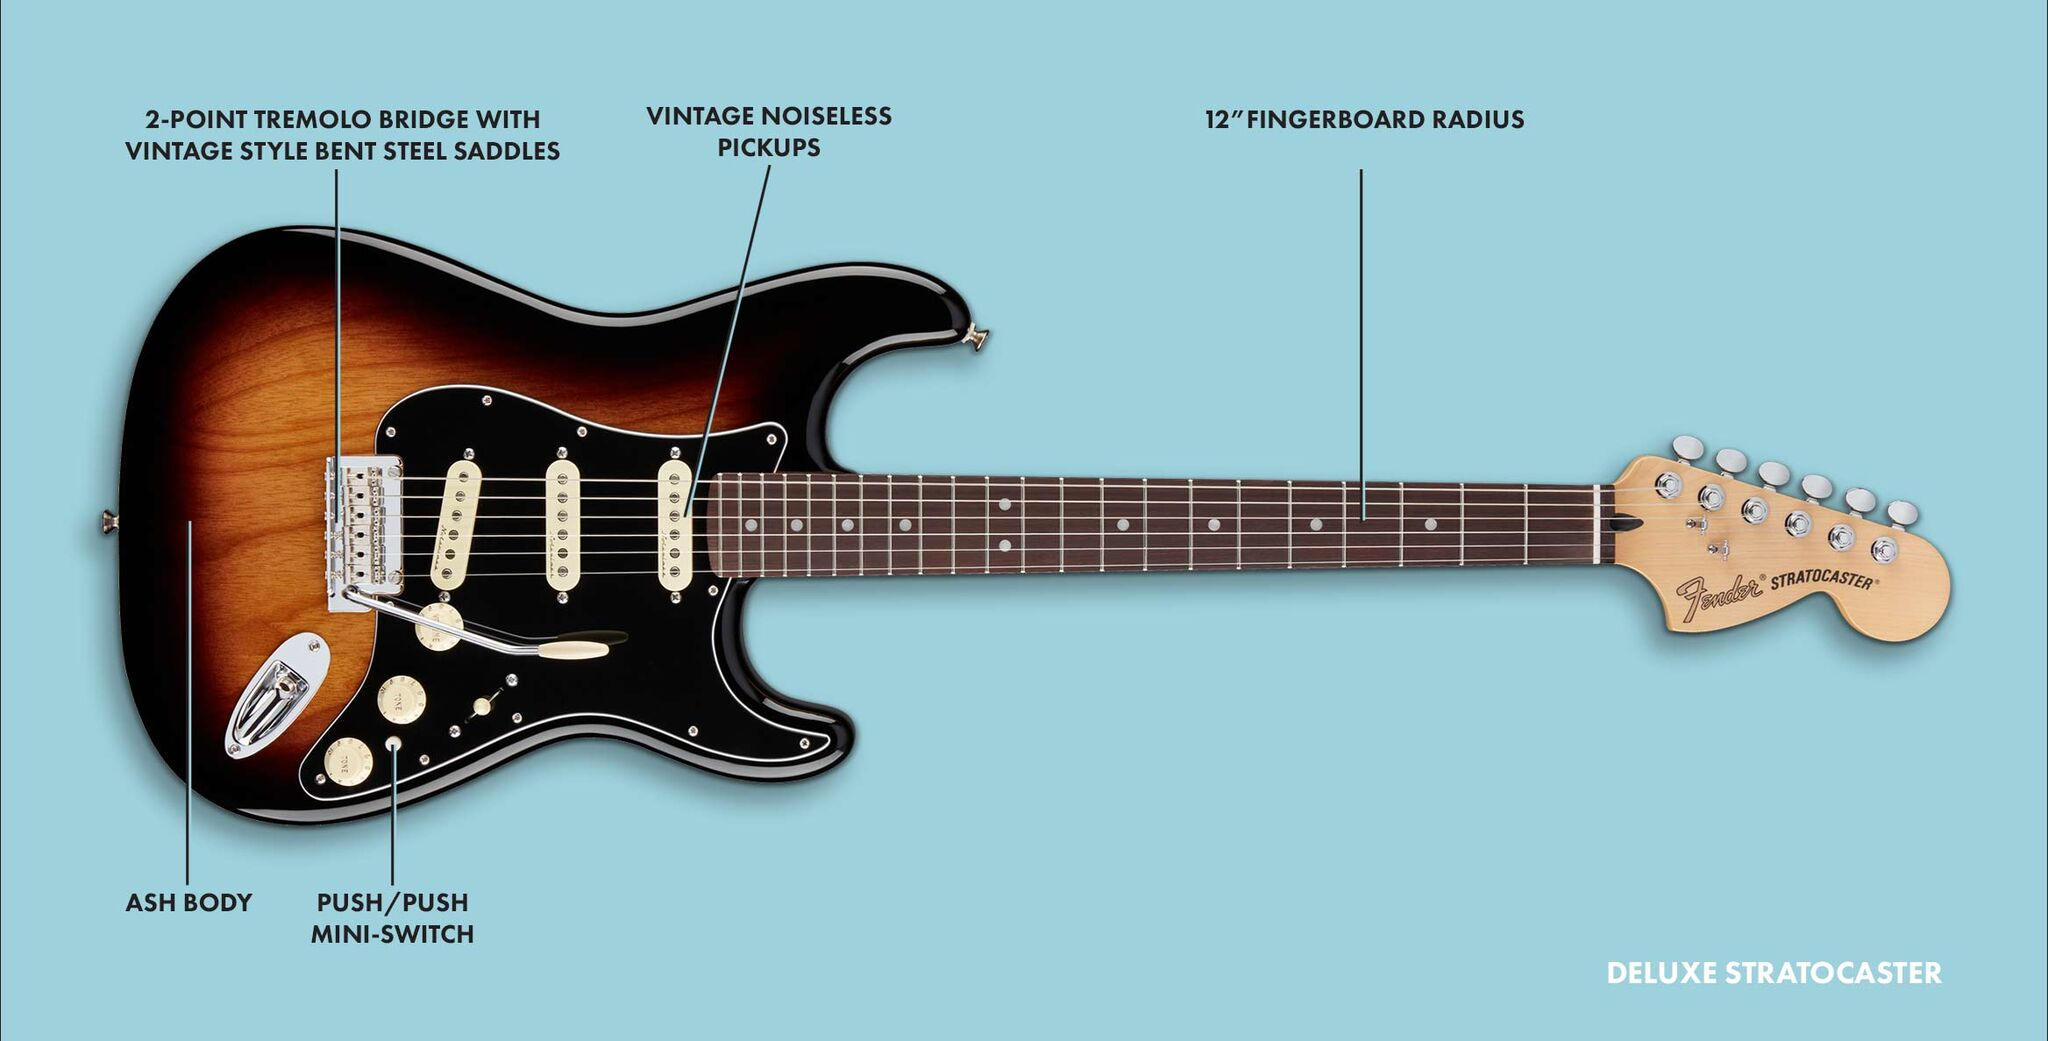 Magnificent Pit Bike Wiring Tall Stratocaster 5 Way Switch Diagram Clean Dimarzio Color Code 3 Humbucker Strat Old Ibanez Humbucker ColouredFender 3 Way Switch Wiring Stratocaster Guide: Which Strat To Buy, Model Comparison | Fender